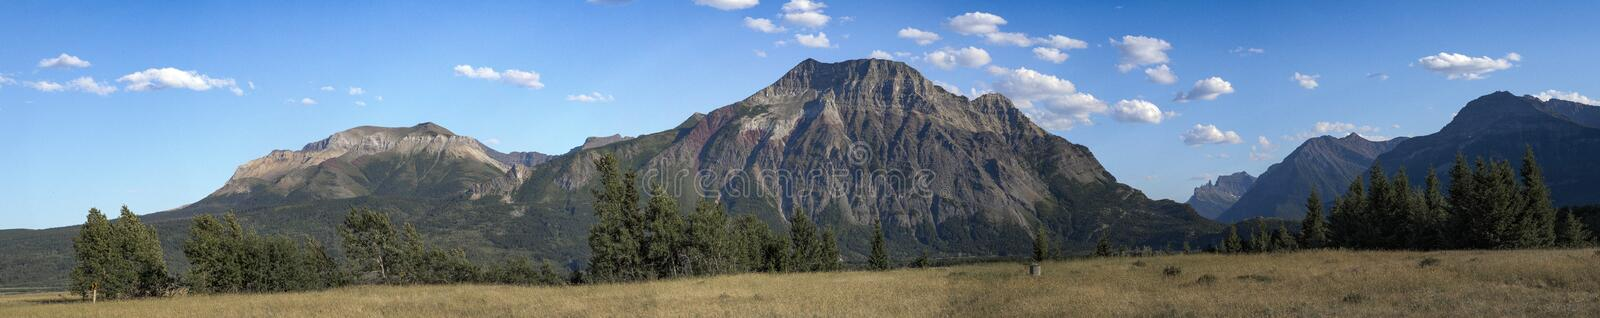 Brown Mountain Under Blue and White Sky stock images